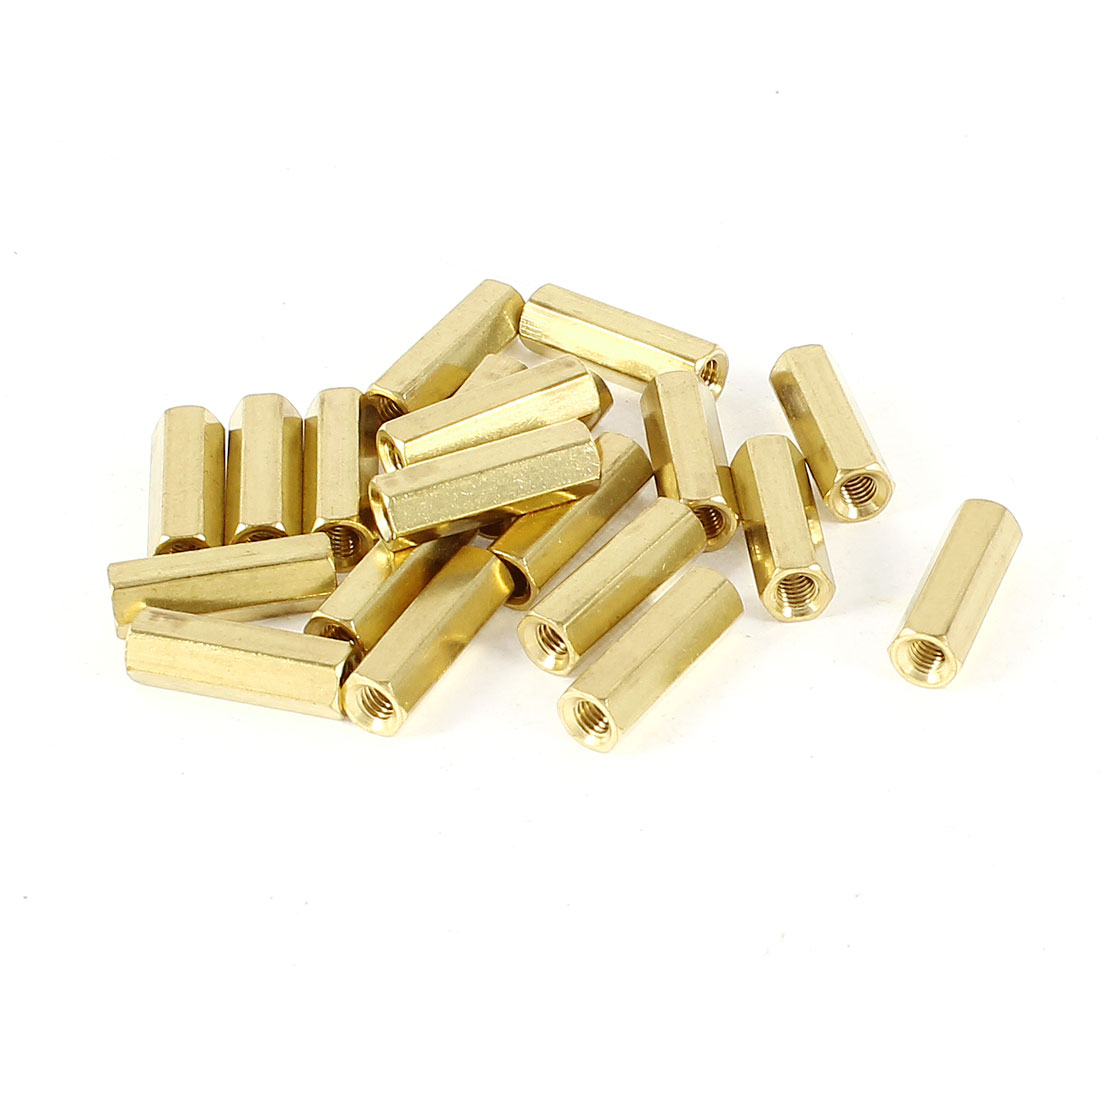 20 Pieces M3 Female Threaded PCB Brass Standoff Spacer 15mm High Gold Tone M3x15